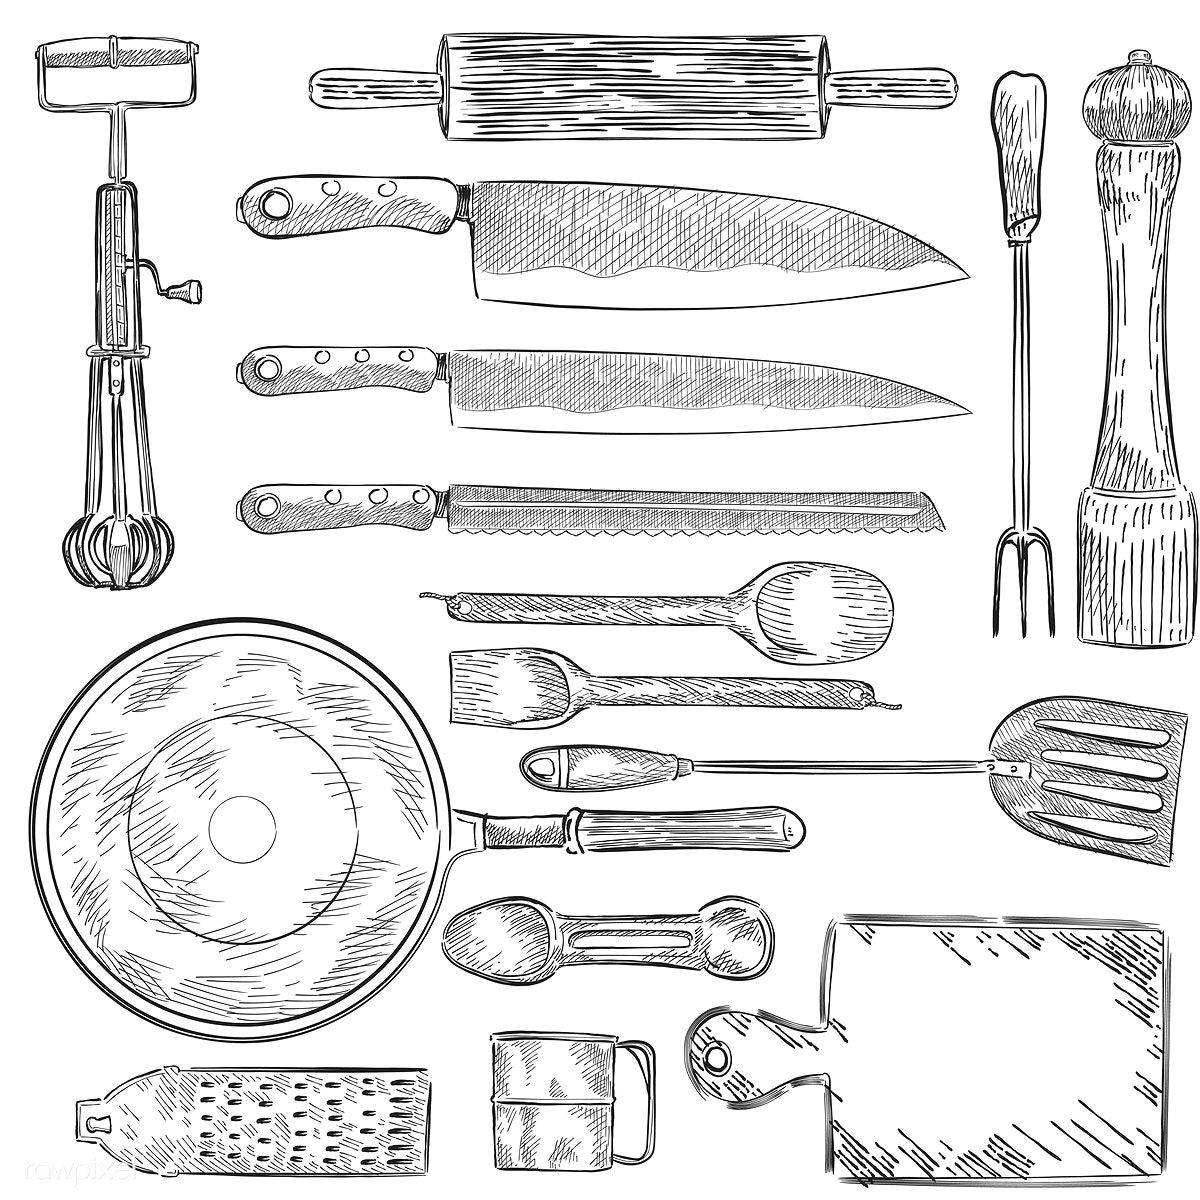 Illustration of a set of kitchen utensils | free image by rawpixel ...